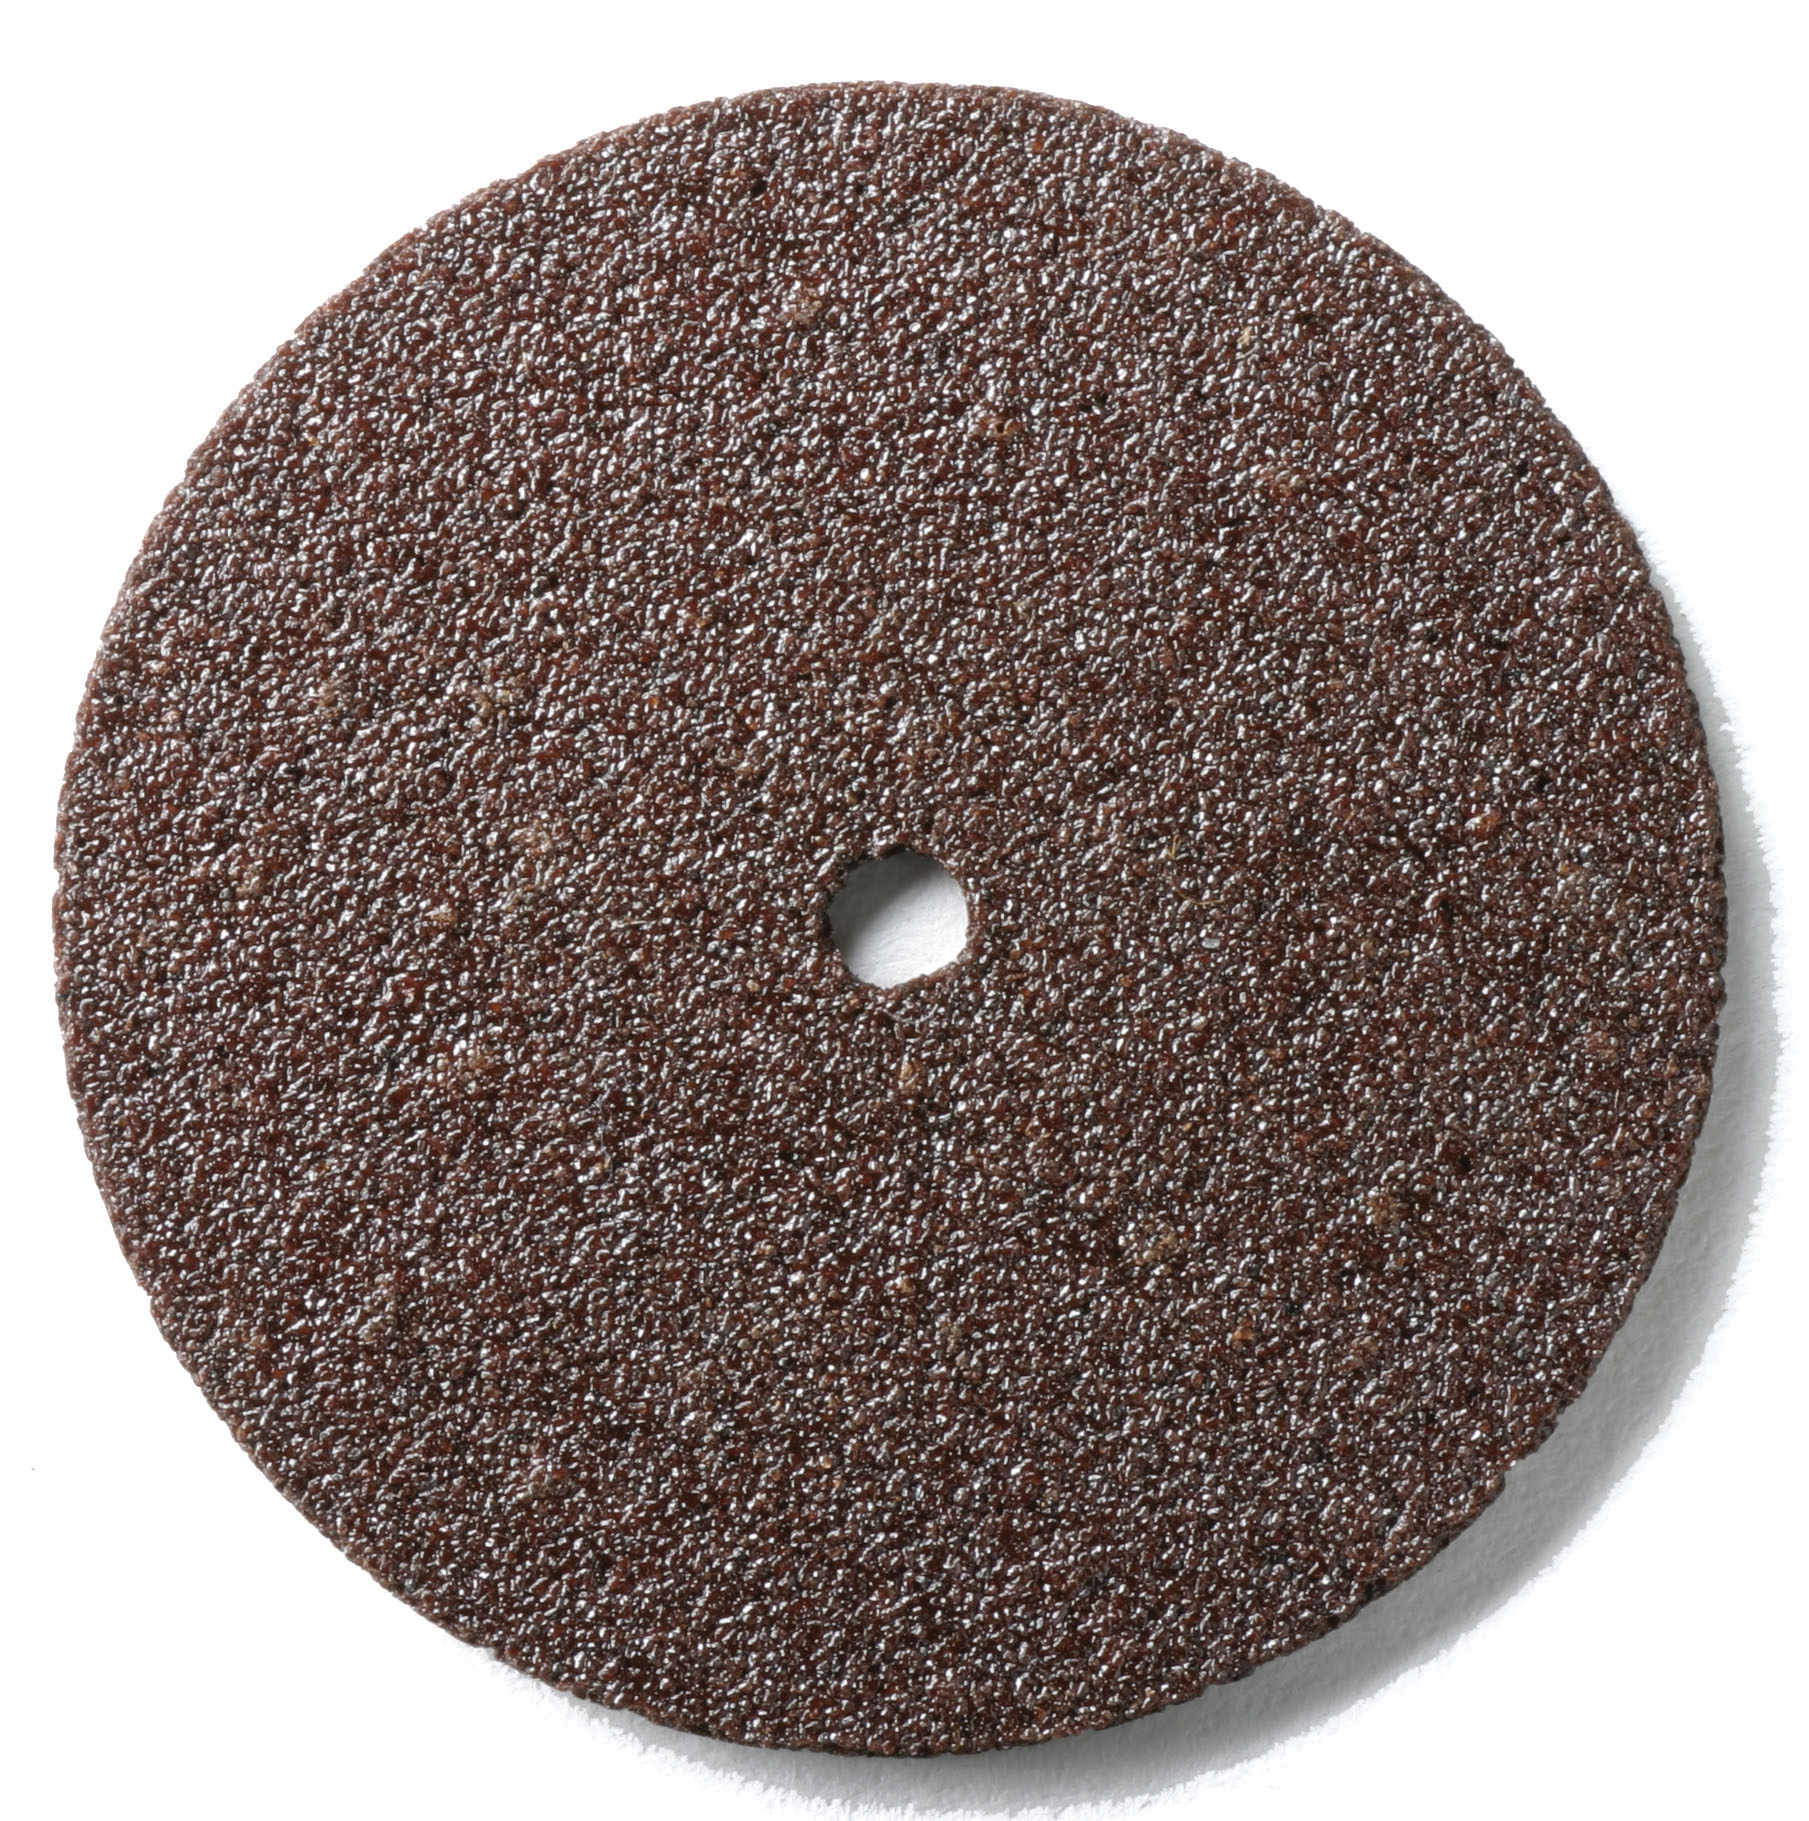 Dremel 409 1/4 inch Cut-off Wheels for Metal, Thin Wood and Plastic, 36-Pack